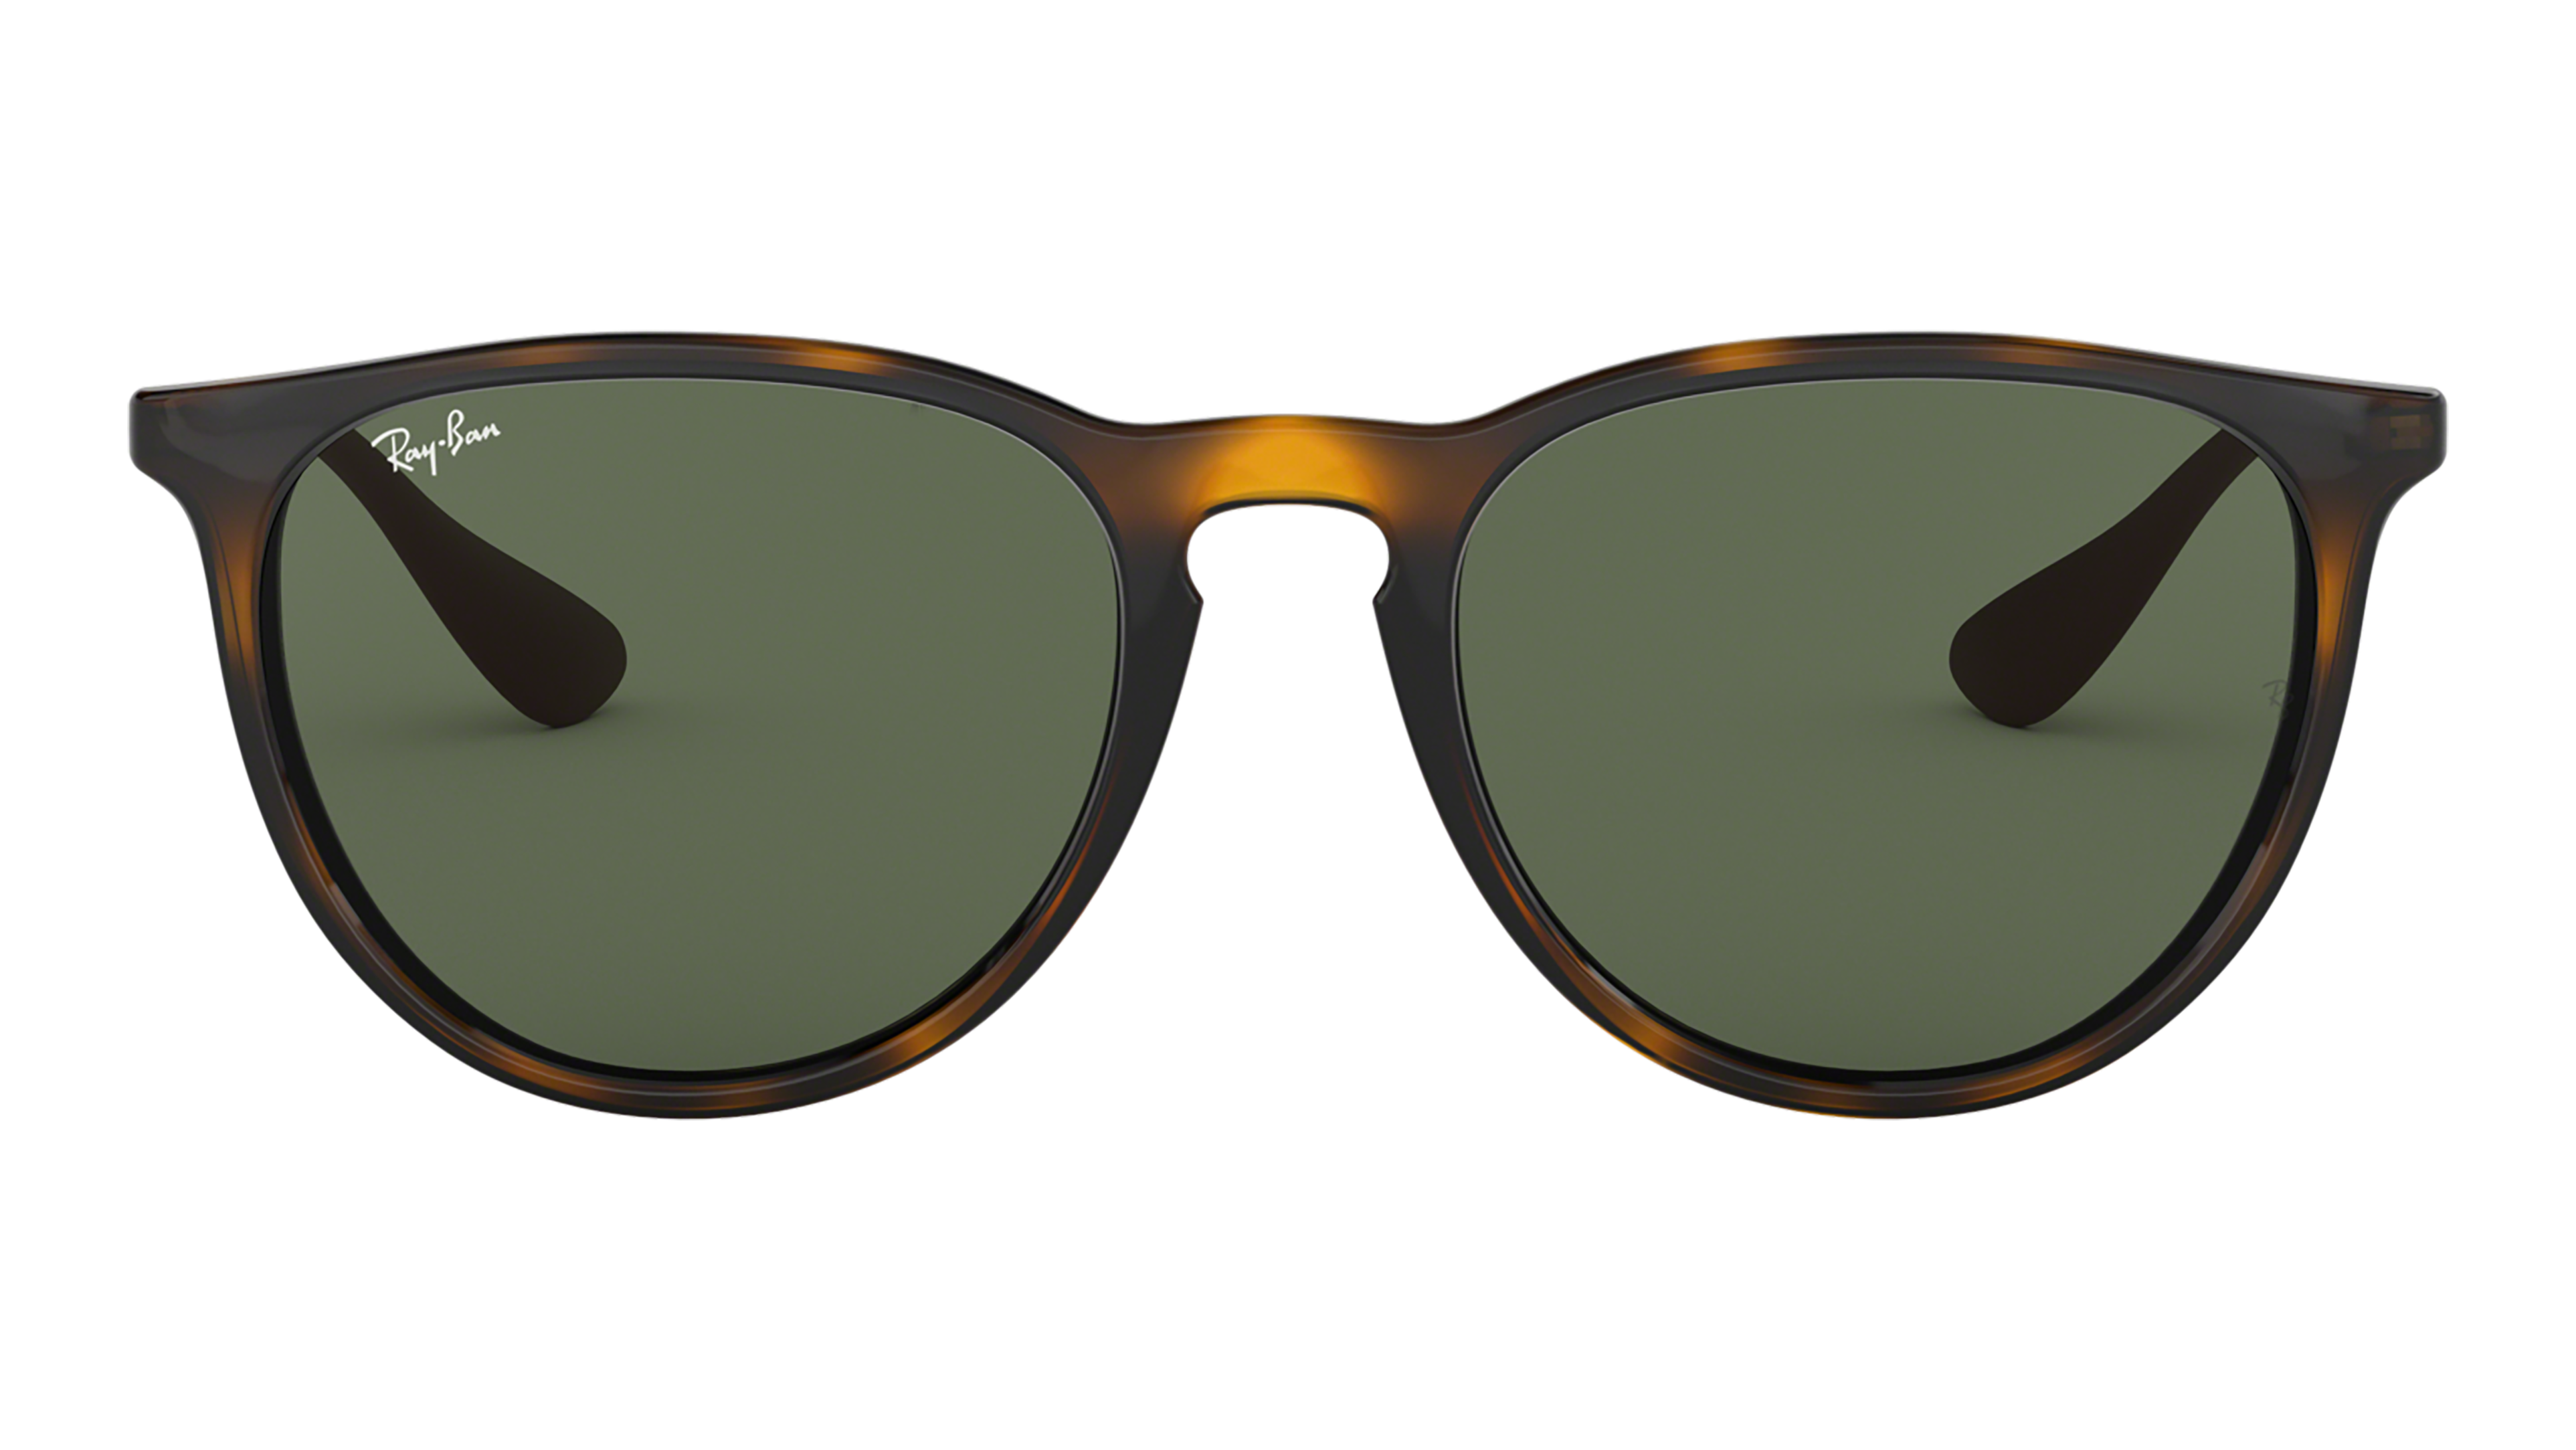 Front Ray-Ban Ray-Ban RB4171 710/71 54/18 Bruin/Groen